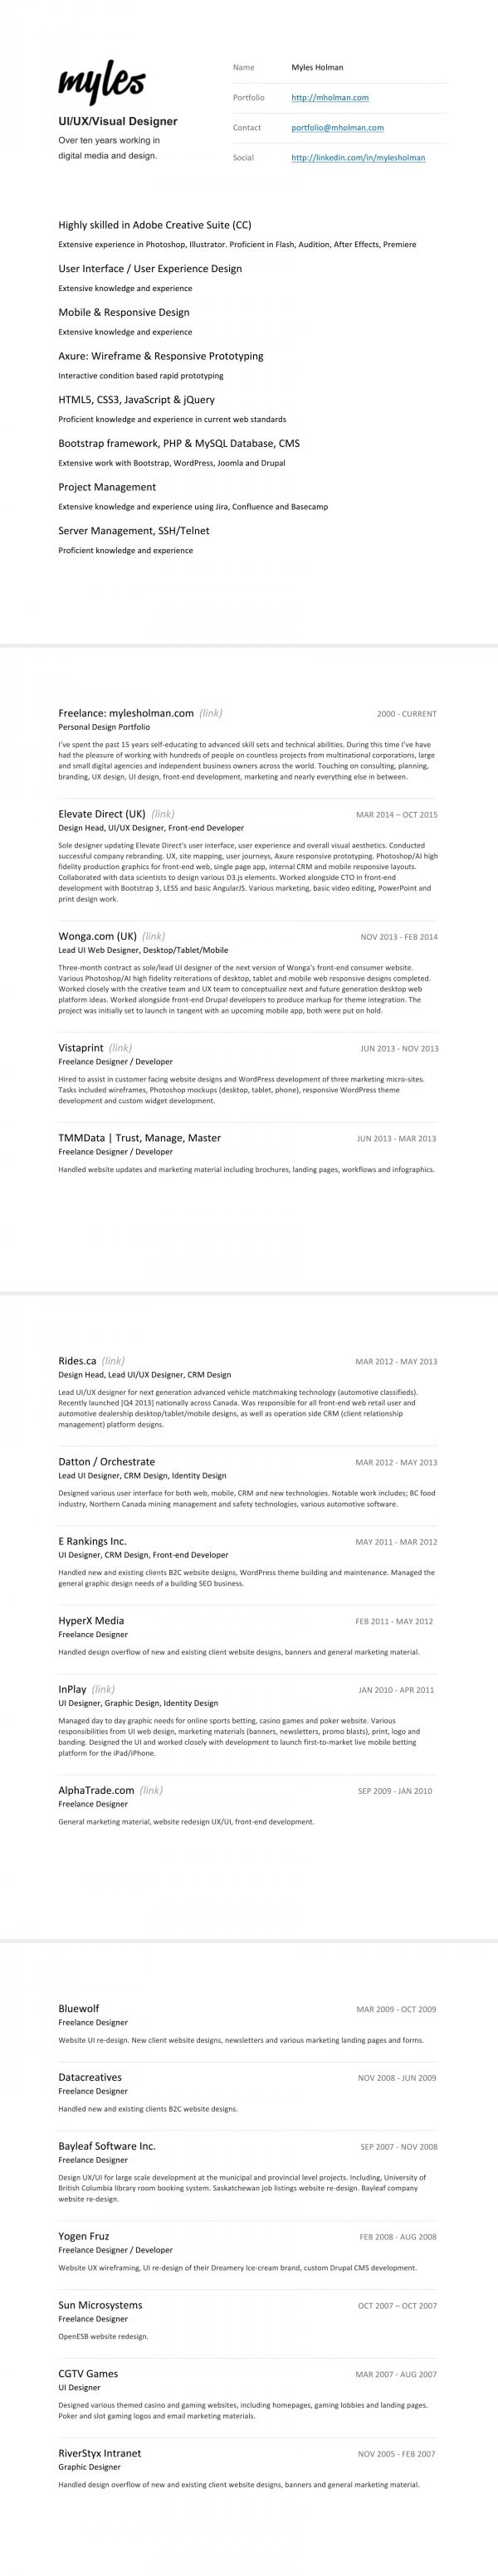 Best 75+ Resume / CV images on Pinterest | Curriculum, Resume and ...